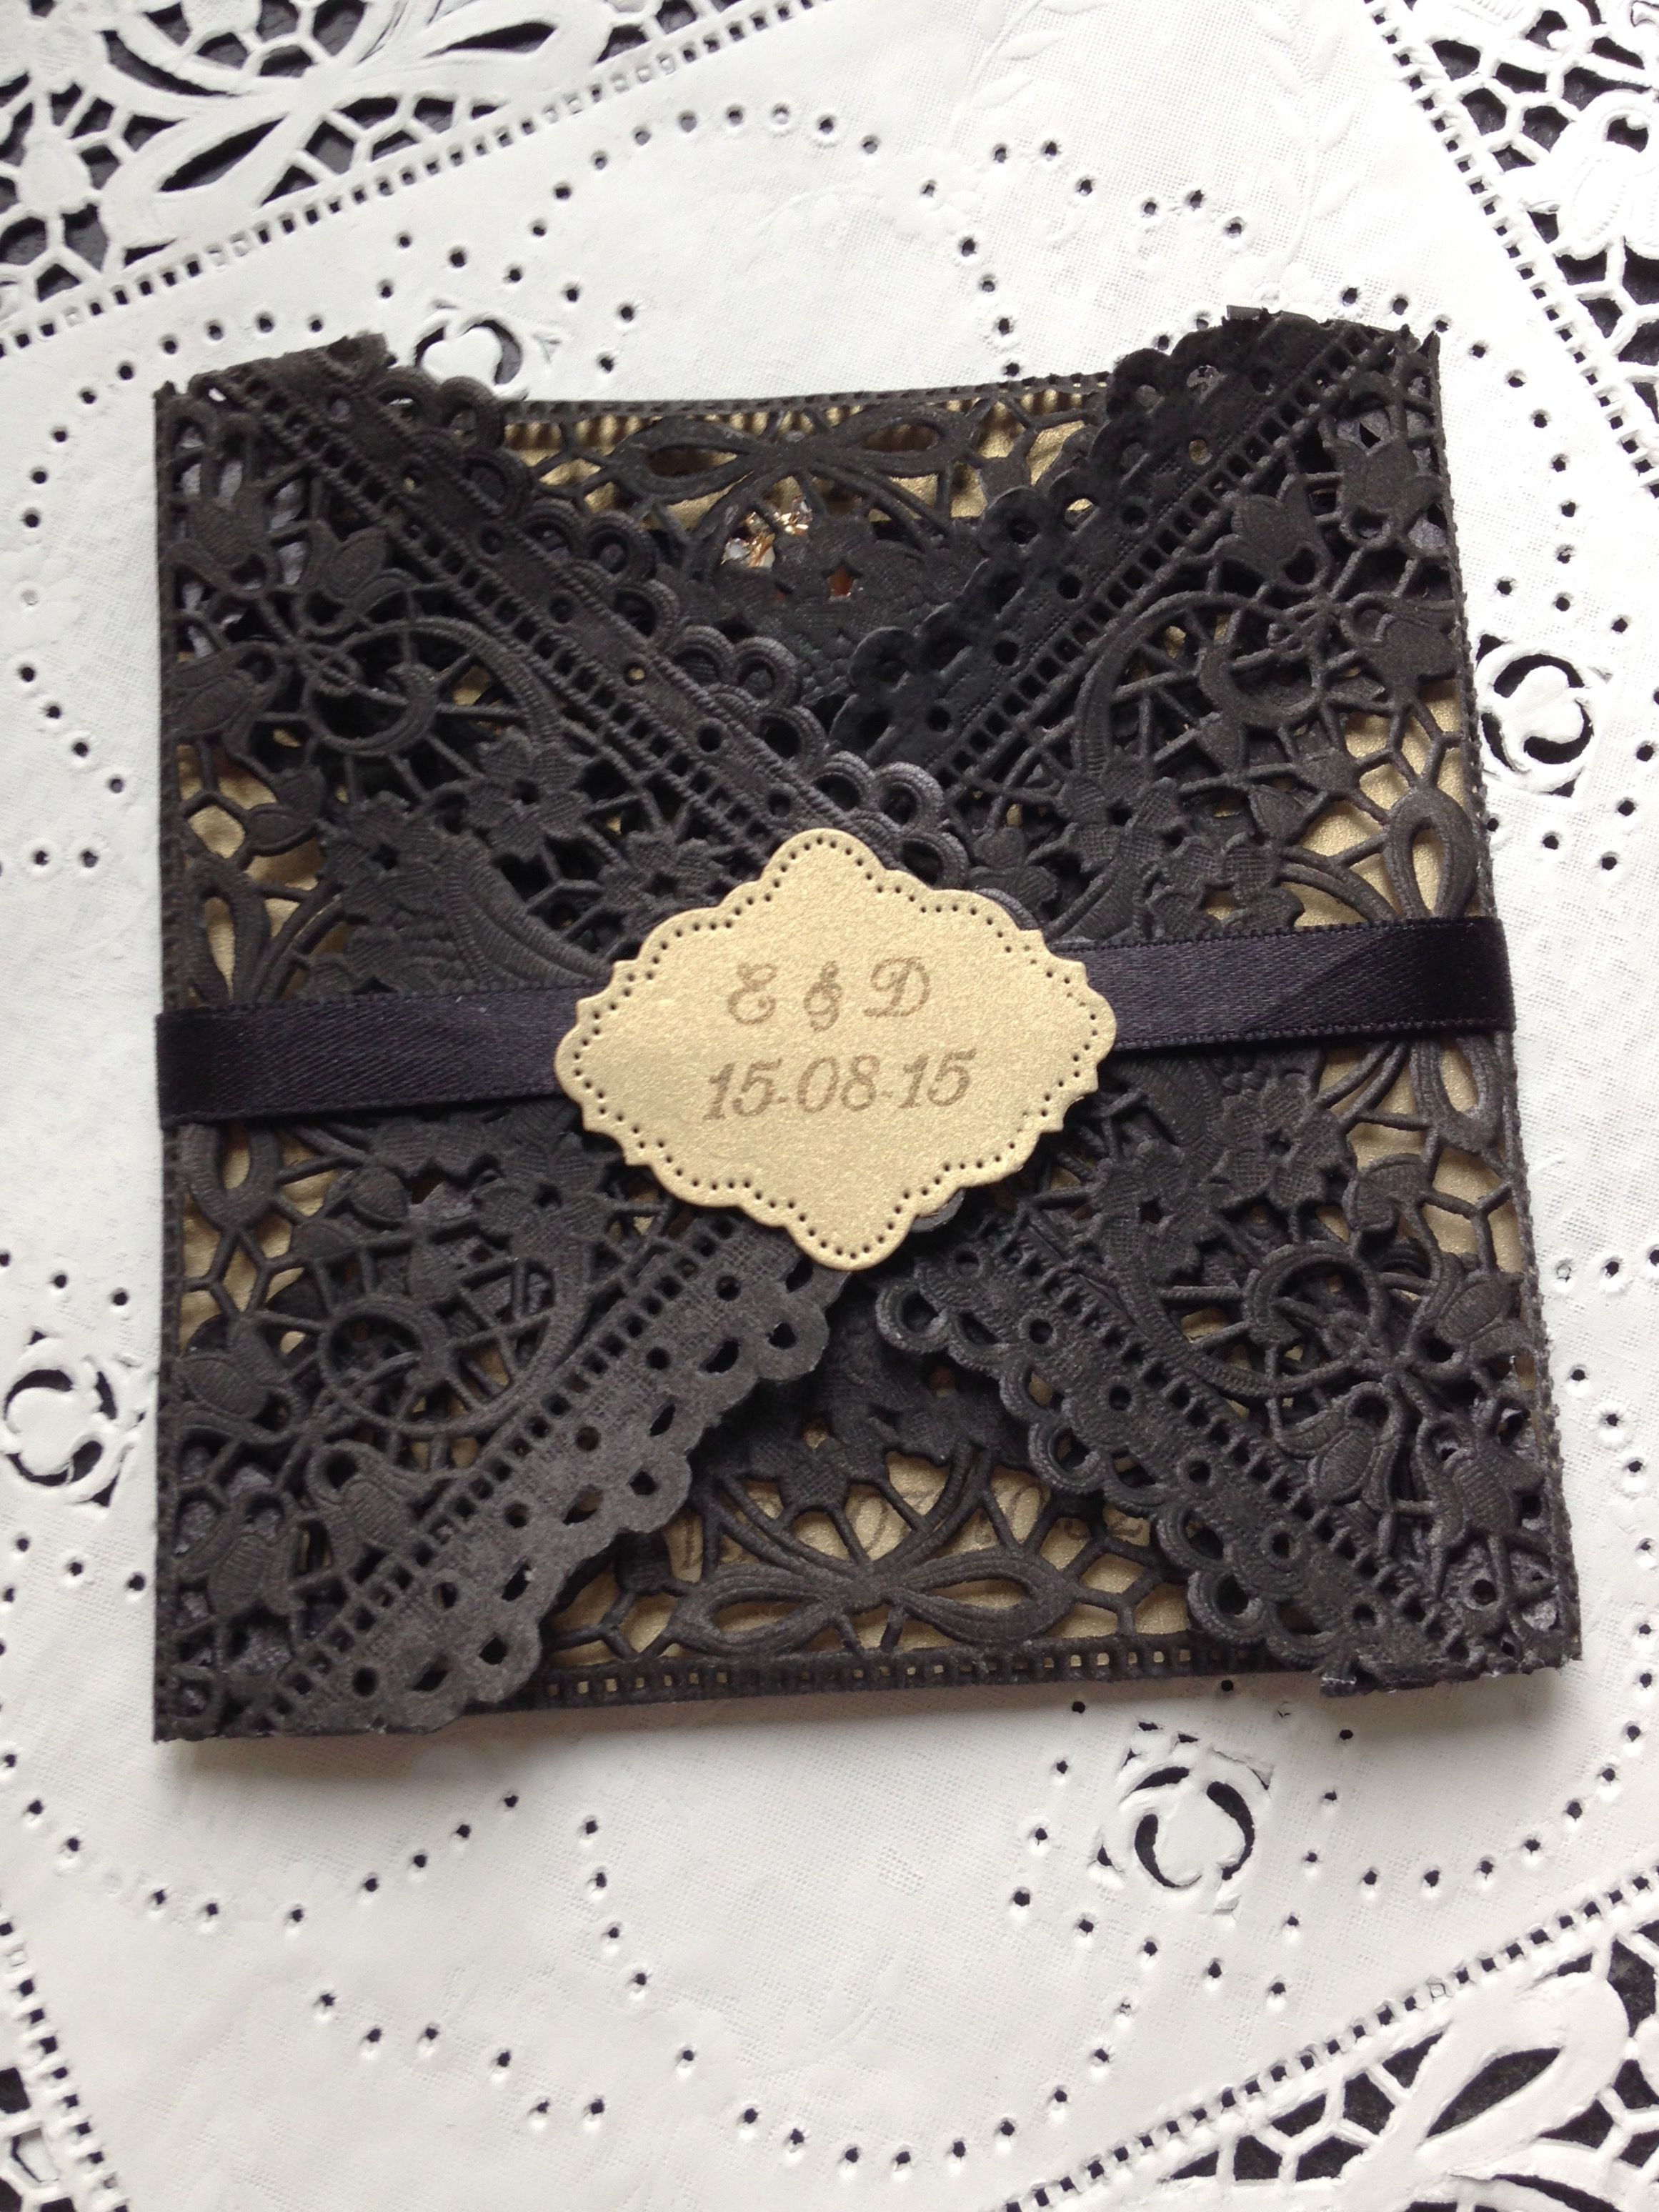 Personalised Hand Made Doily Wedding Invitation In Black Gold With Monogram Satin Wrap By Crafty Designer: Black Doily Wedding Invitations At Reisefeber.org